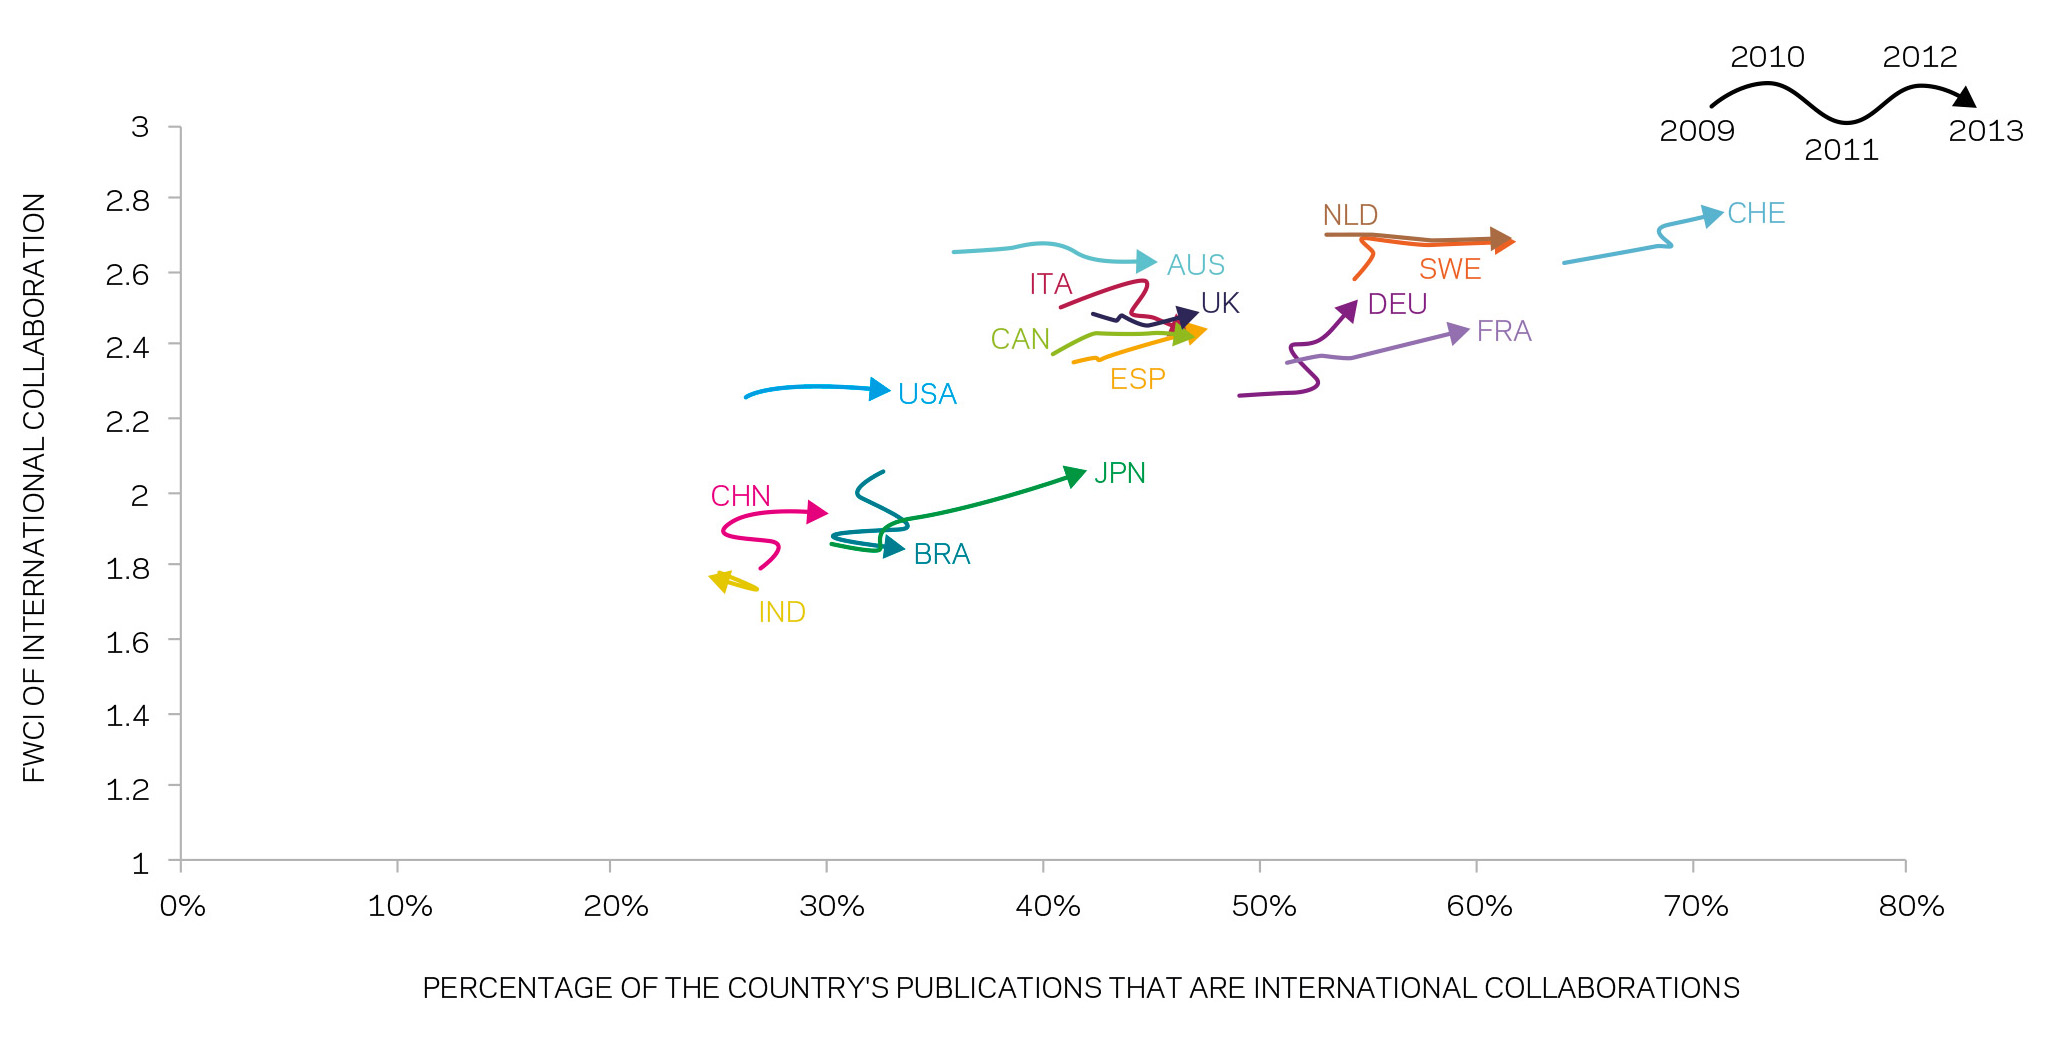 Percentage of country's publications that are international collaborations